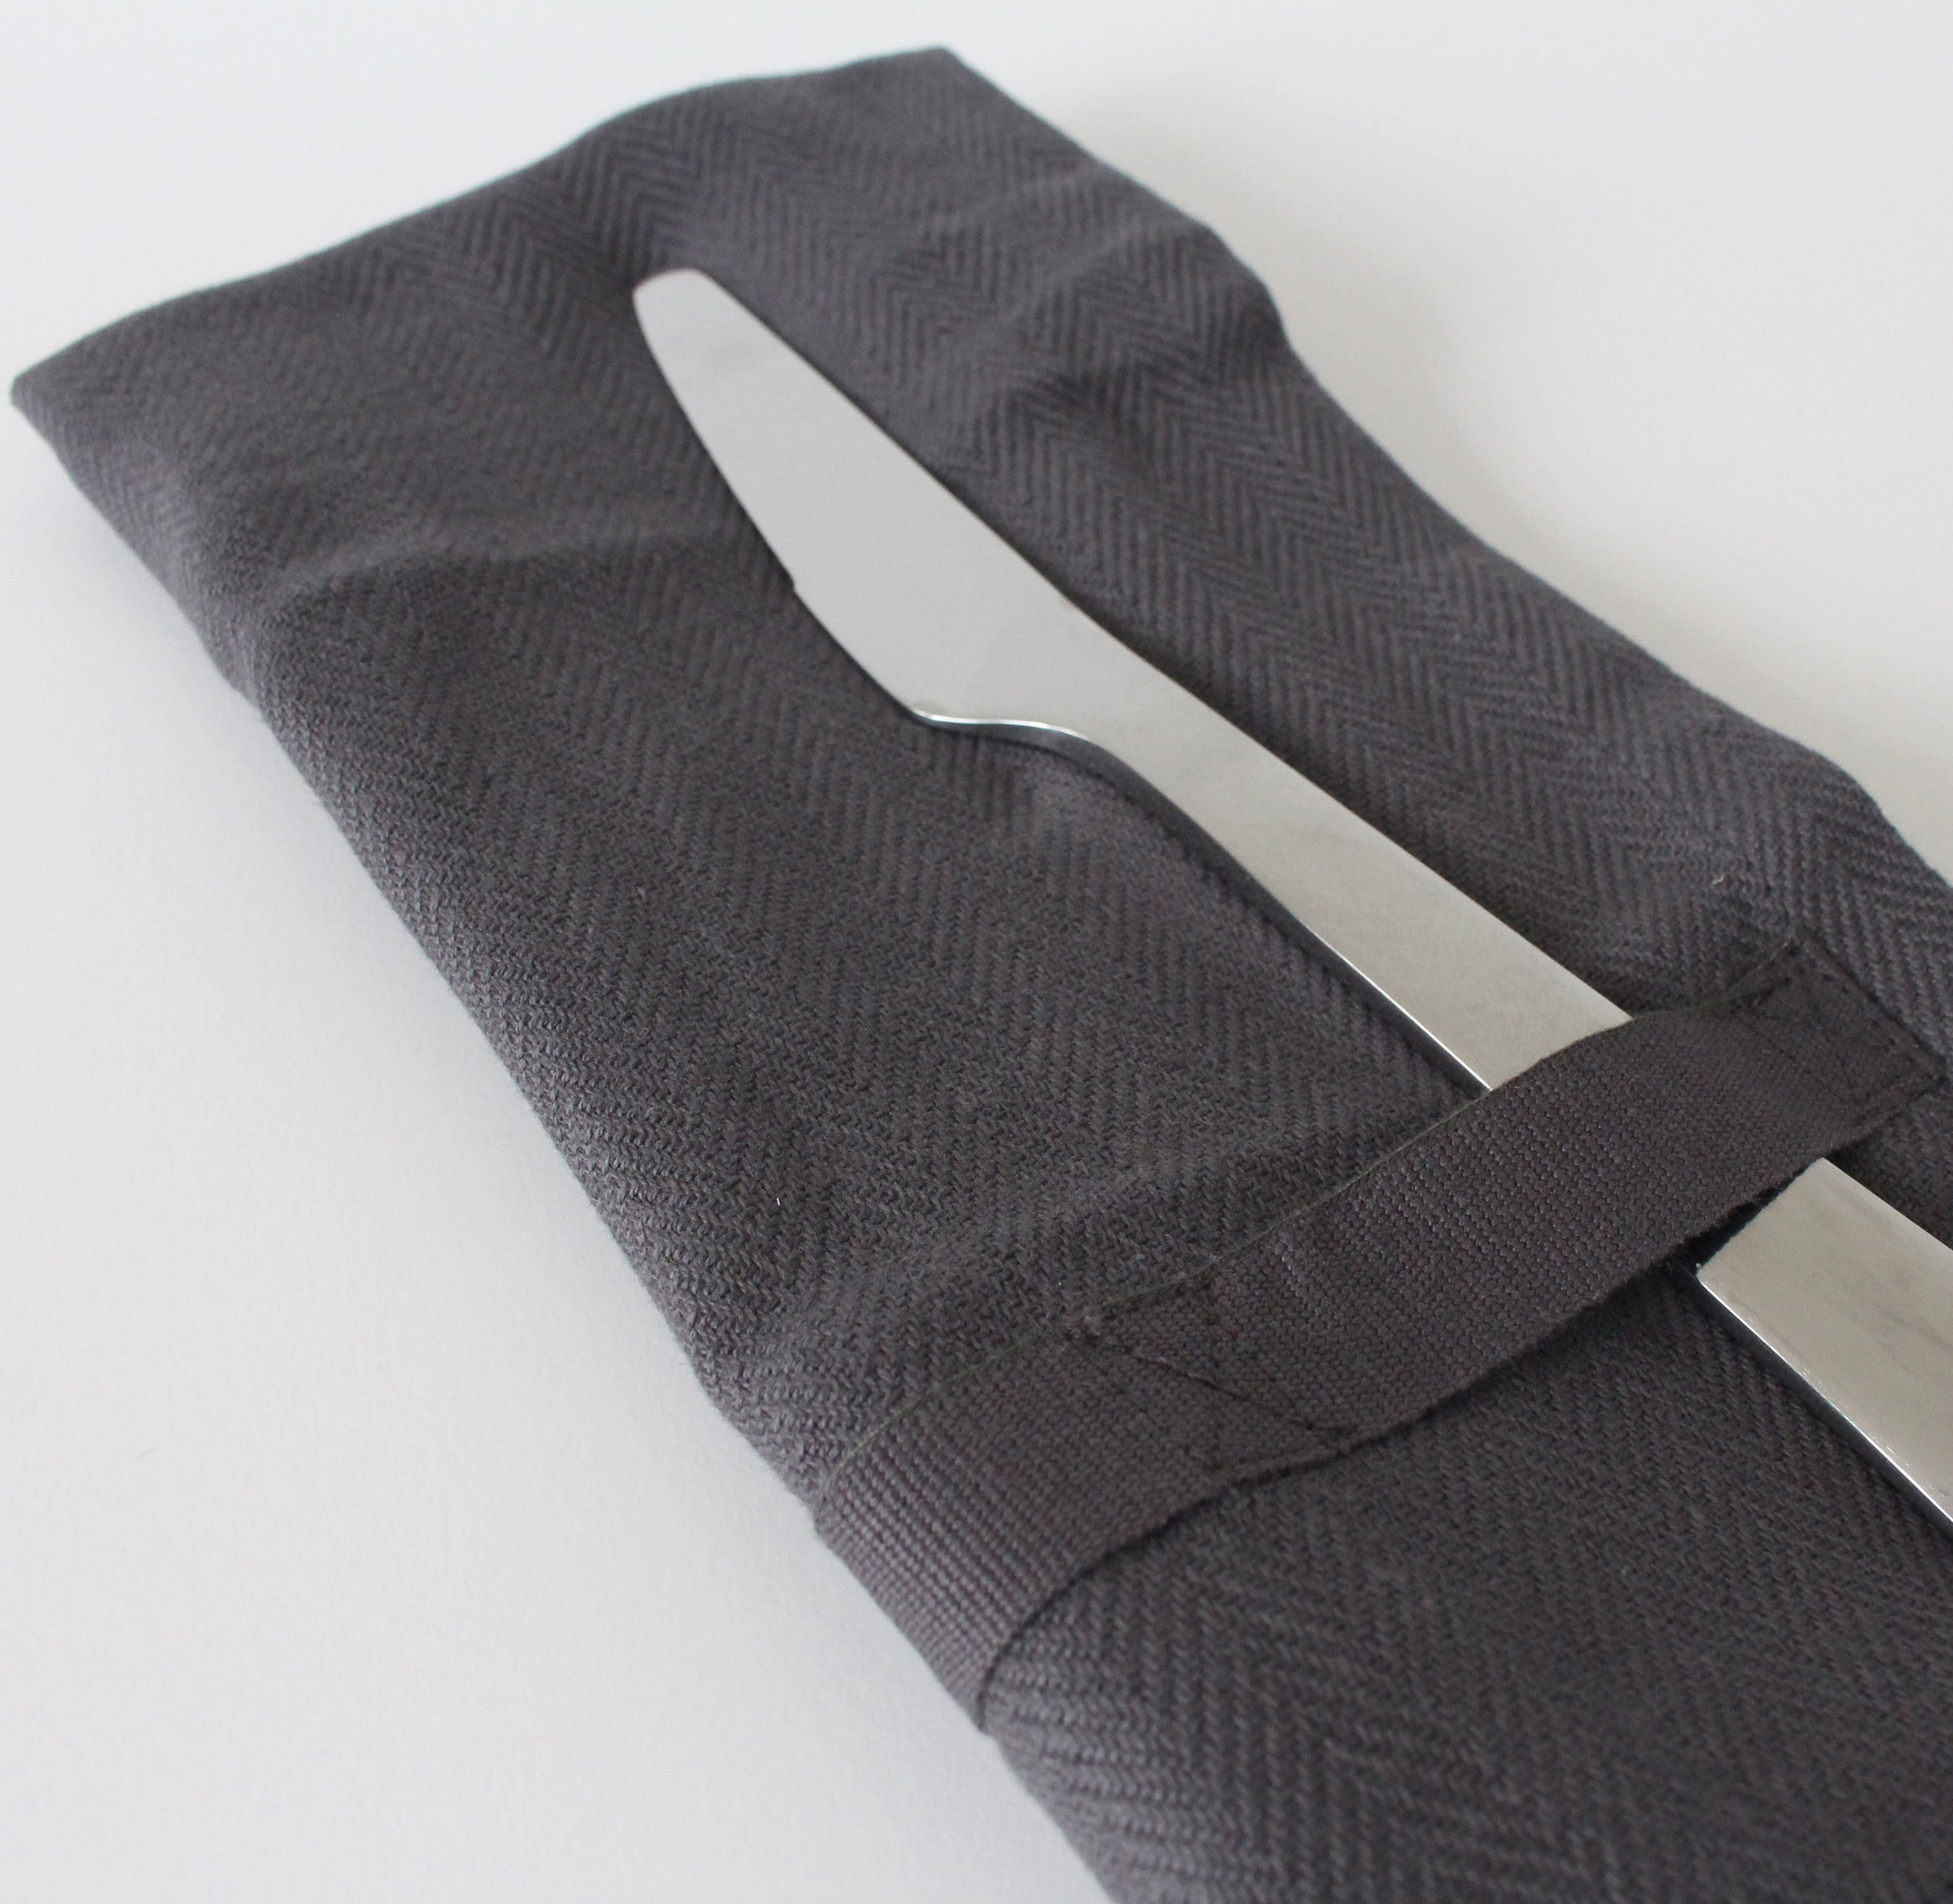 Dark grey napkin, folded with a table knife tucked through the strap